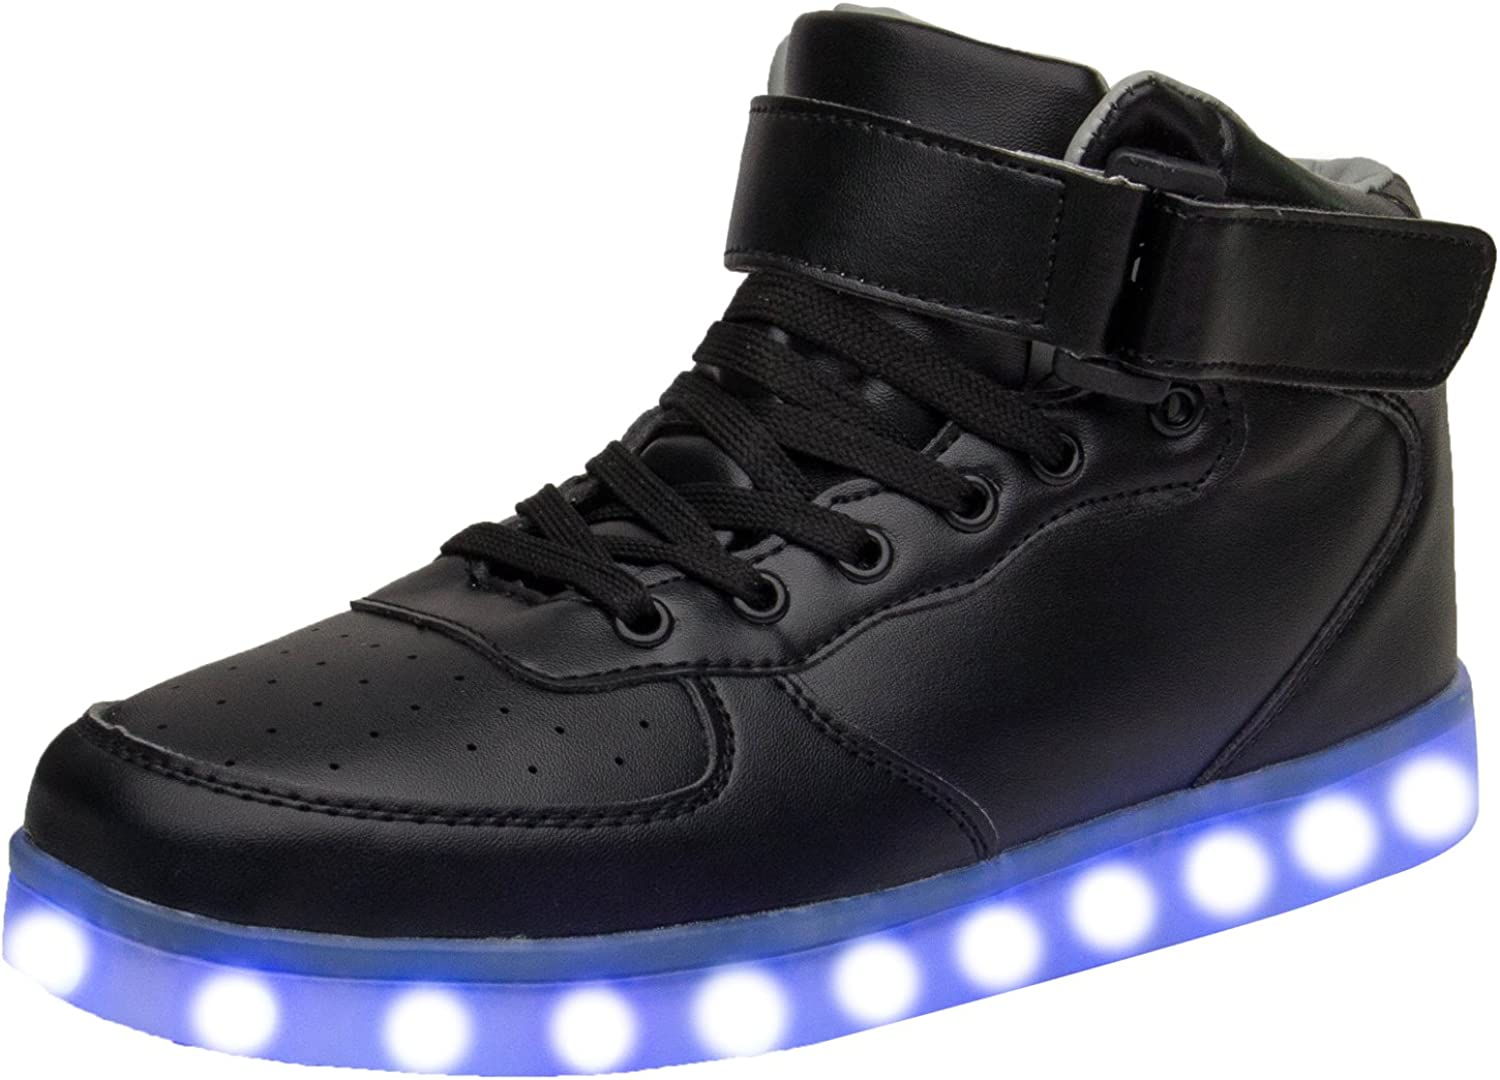 Xi wei hu Unisex USB Charging High Tops Led Light up shoes